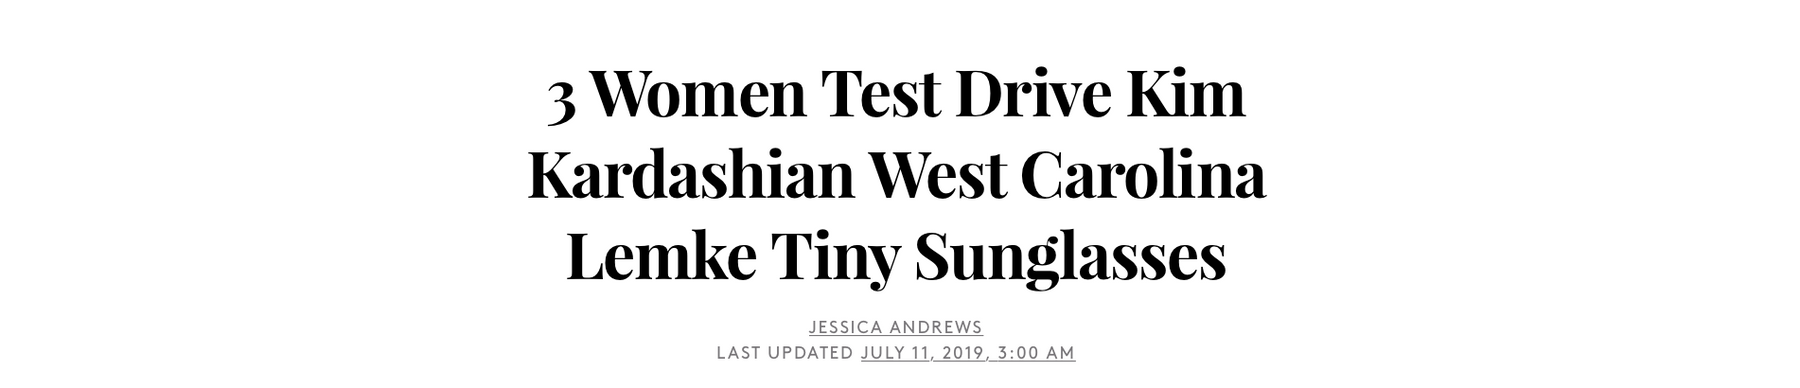 3 Women Test Drive Kim Kardashian West Carolina Lemke Tiny Sunglasses - by Refinery29